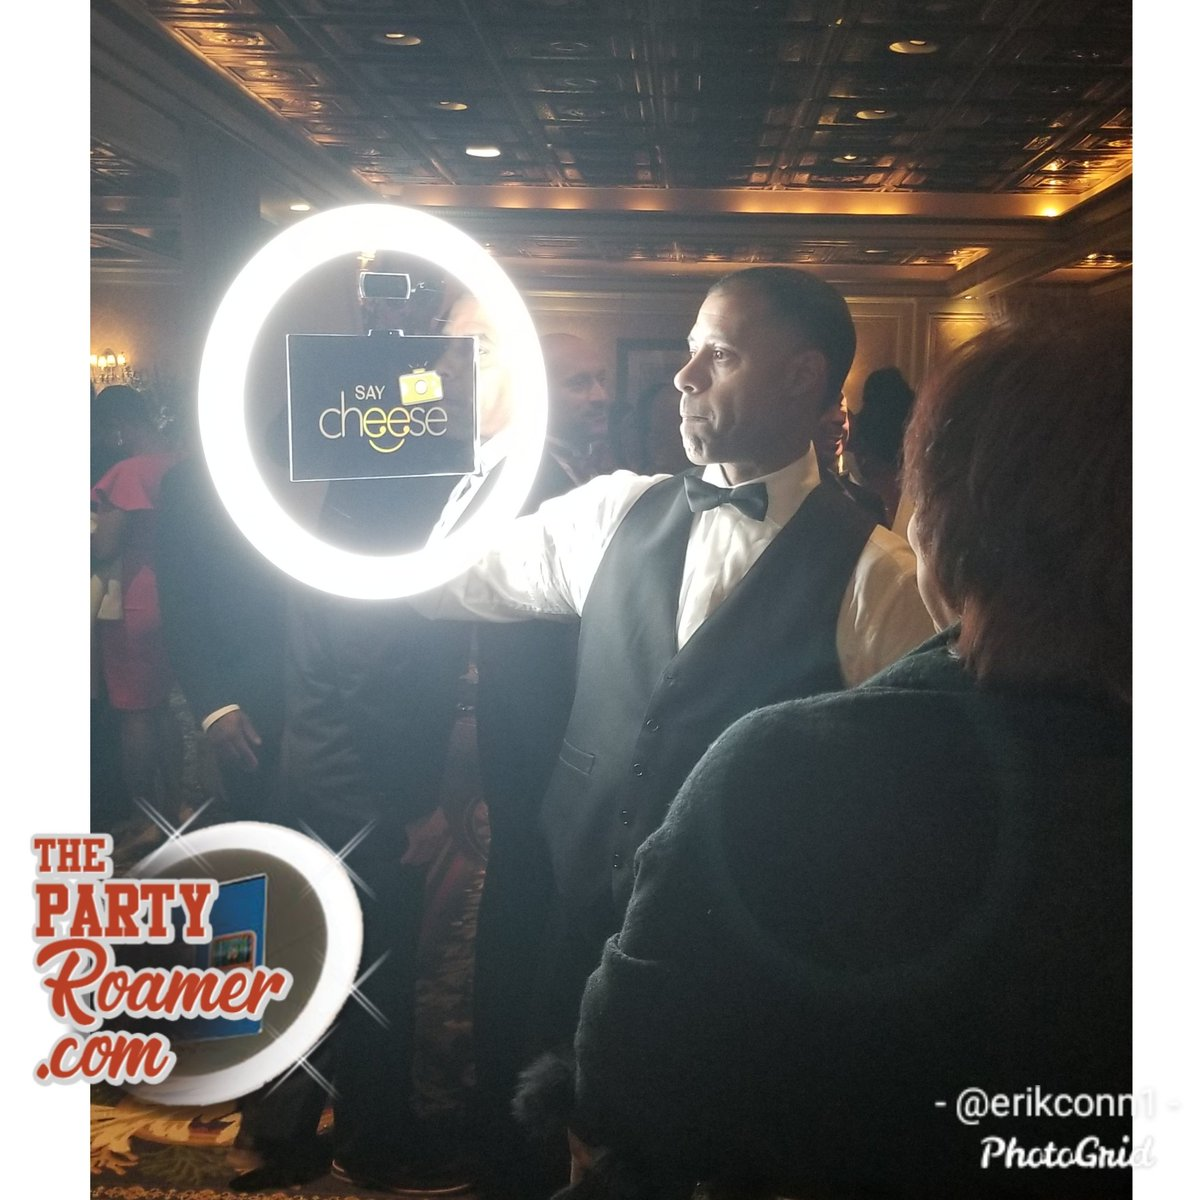 Watch This Video Now! The Best Magic Mirror Photo Booth Ever!  #rentphotobooth #magicmirrornyc #mirrorphotobooth #wegotboomerang #thepartyroamer #partyroamernyc #magicmirror #mirrormebooth #photobooth #birthdays #weddings #corporateevents #prom #graduationspic.twitter.com/BooGsT634d